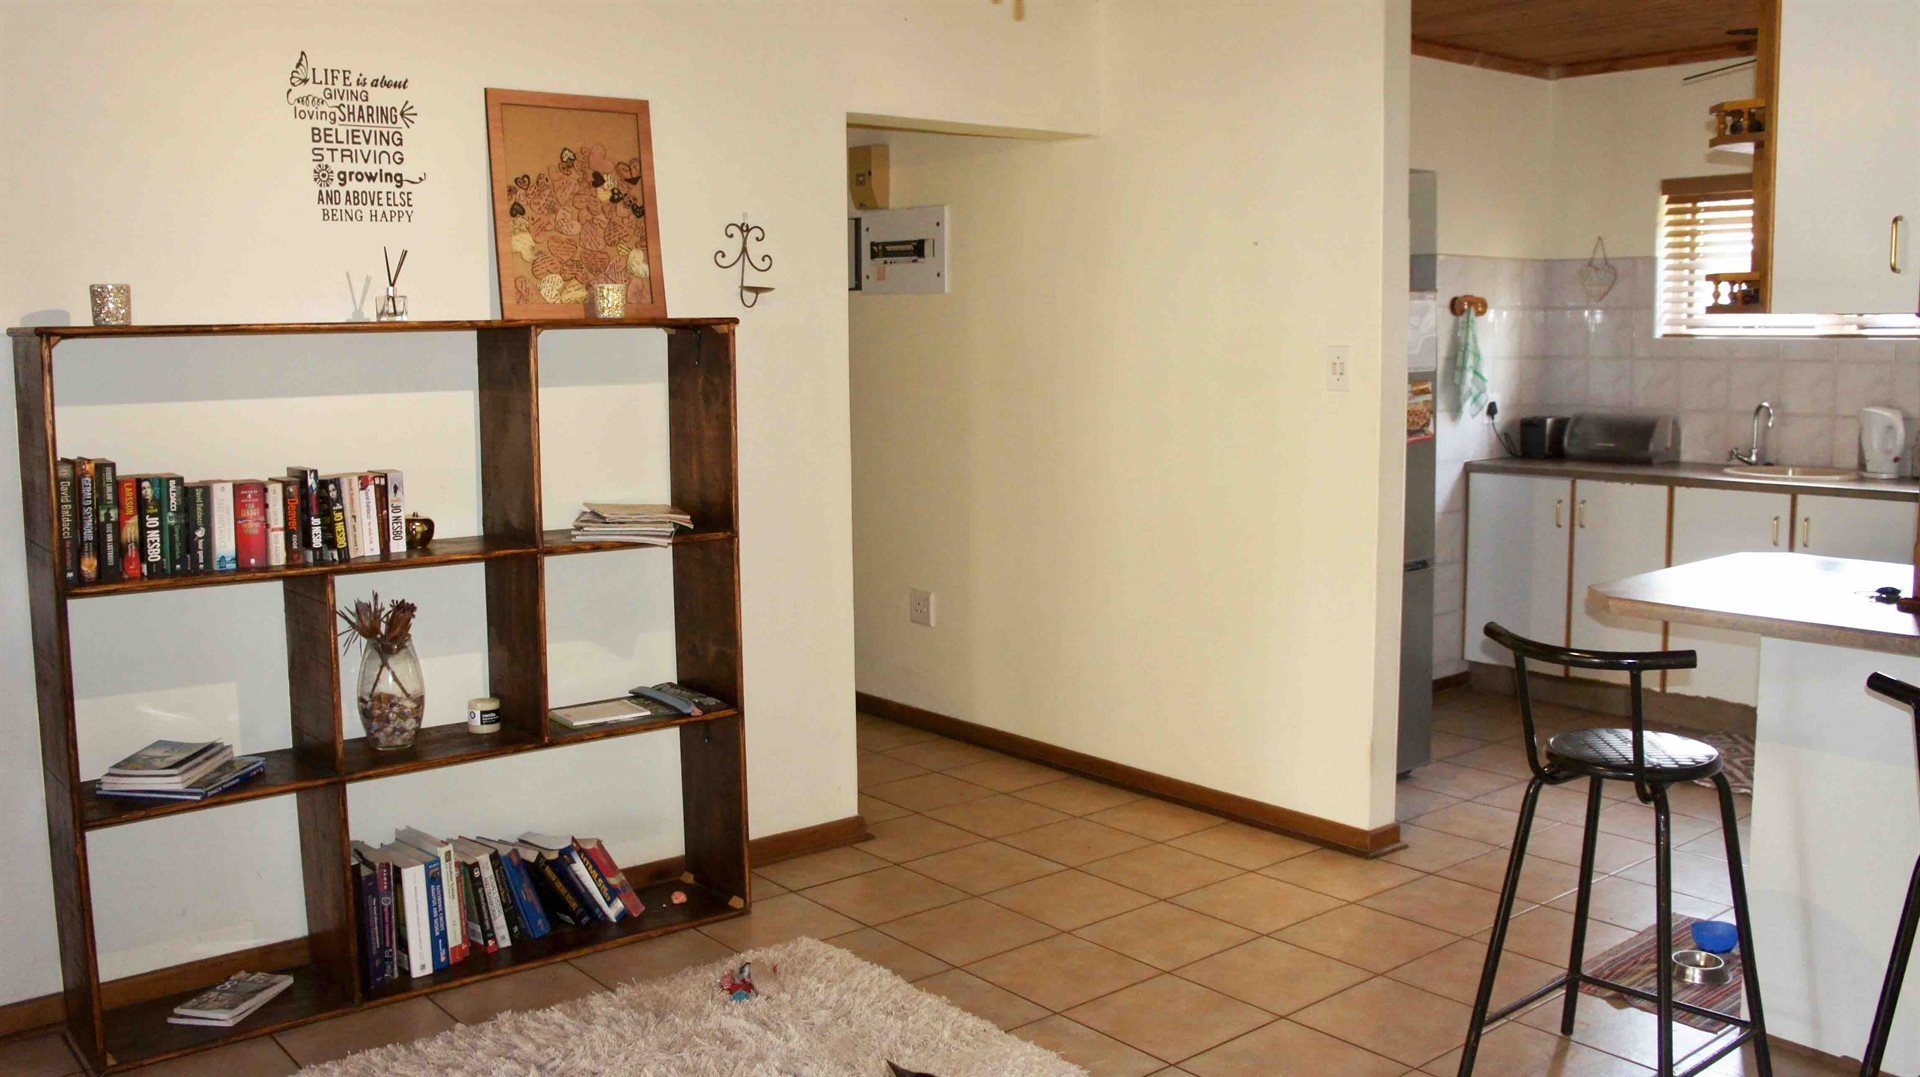 Meer En See property for sale. Ref No: 13538155. Picture no 11